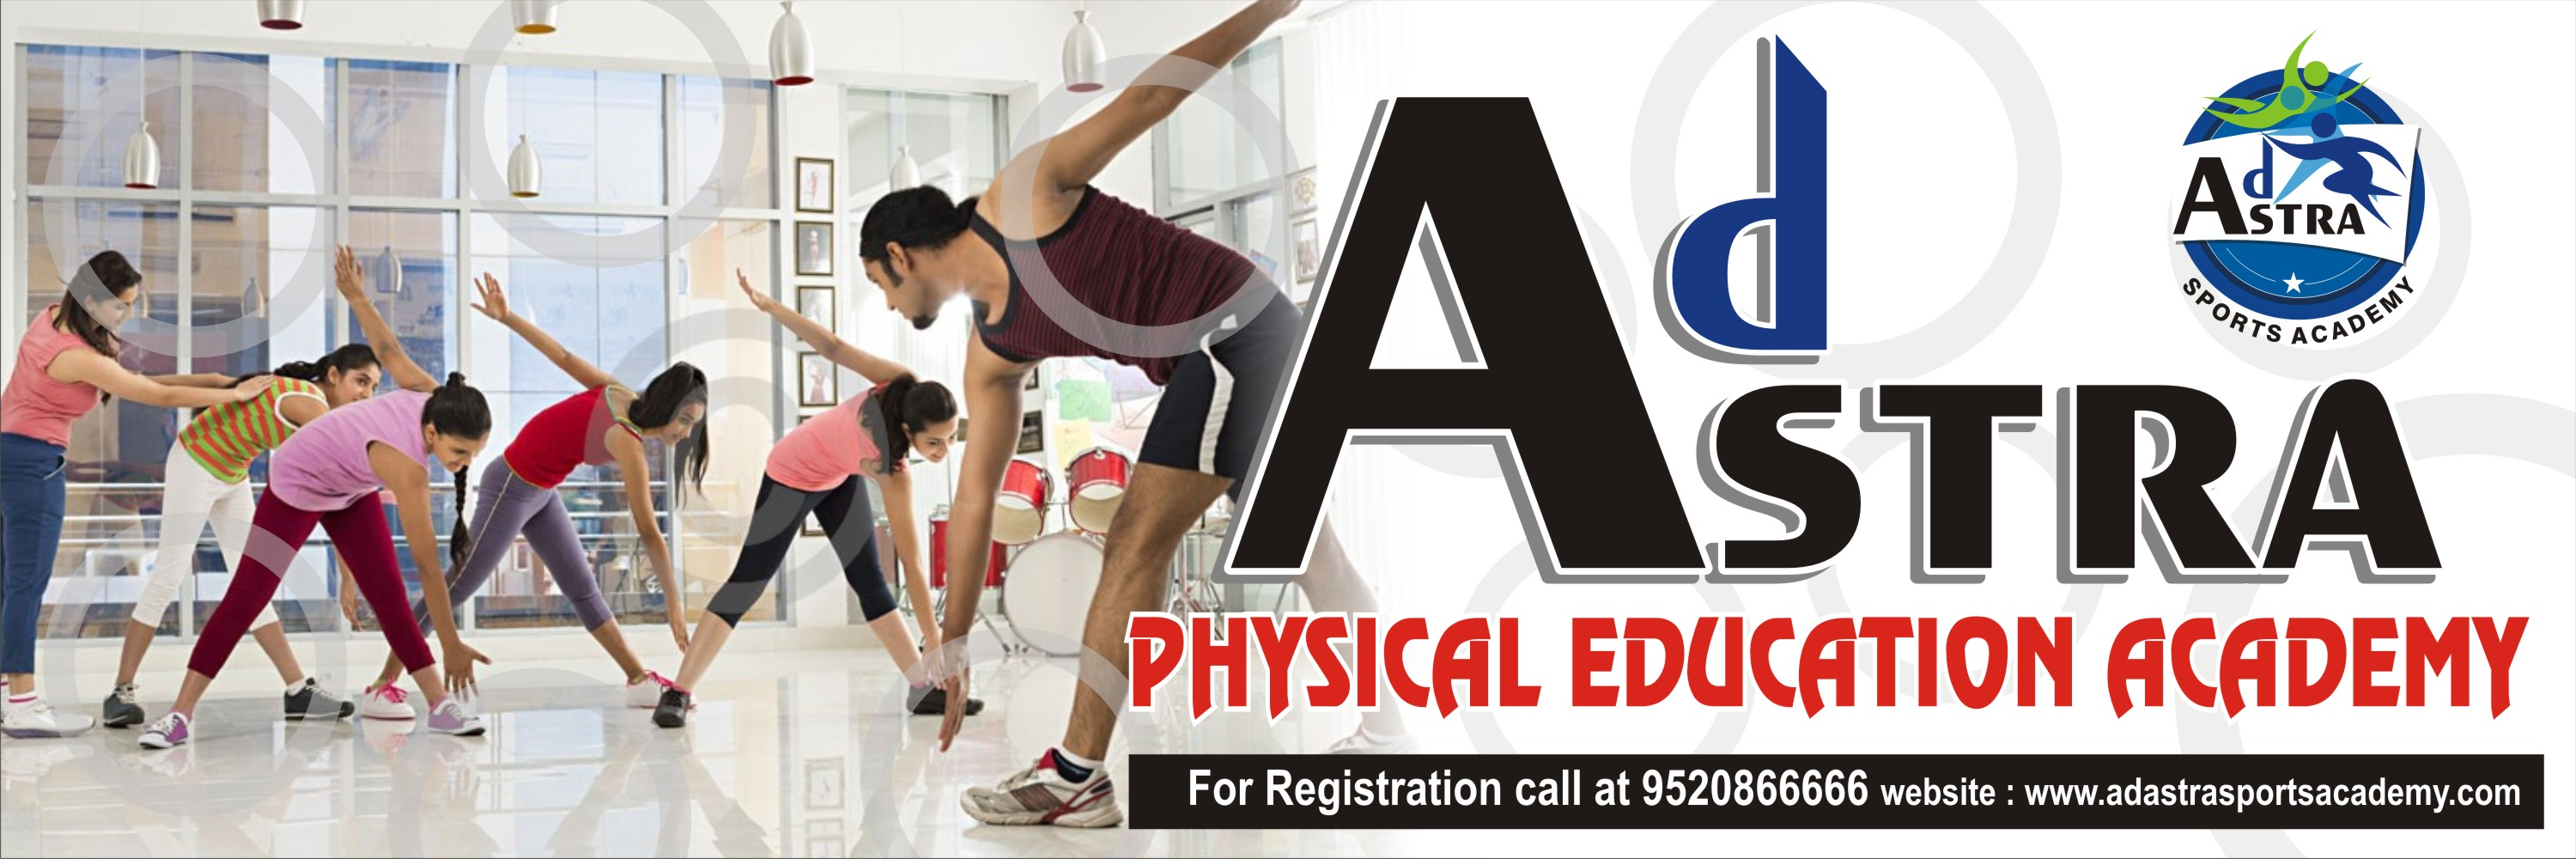 Physical education research papers